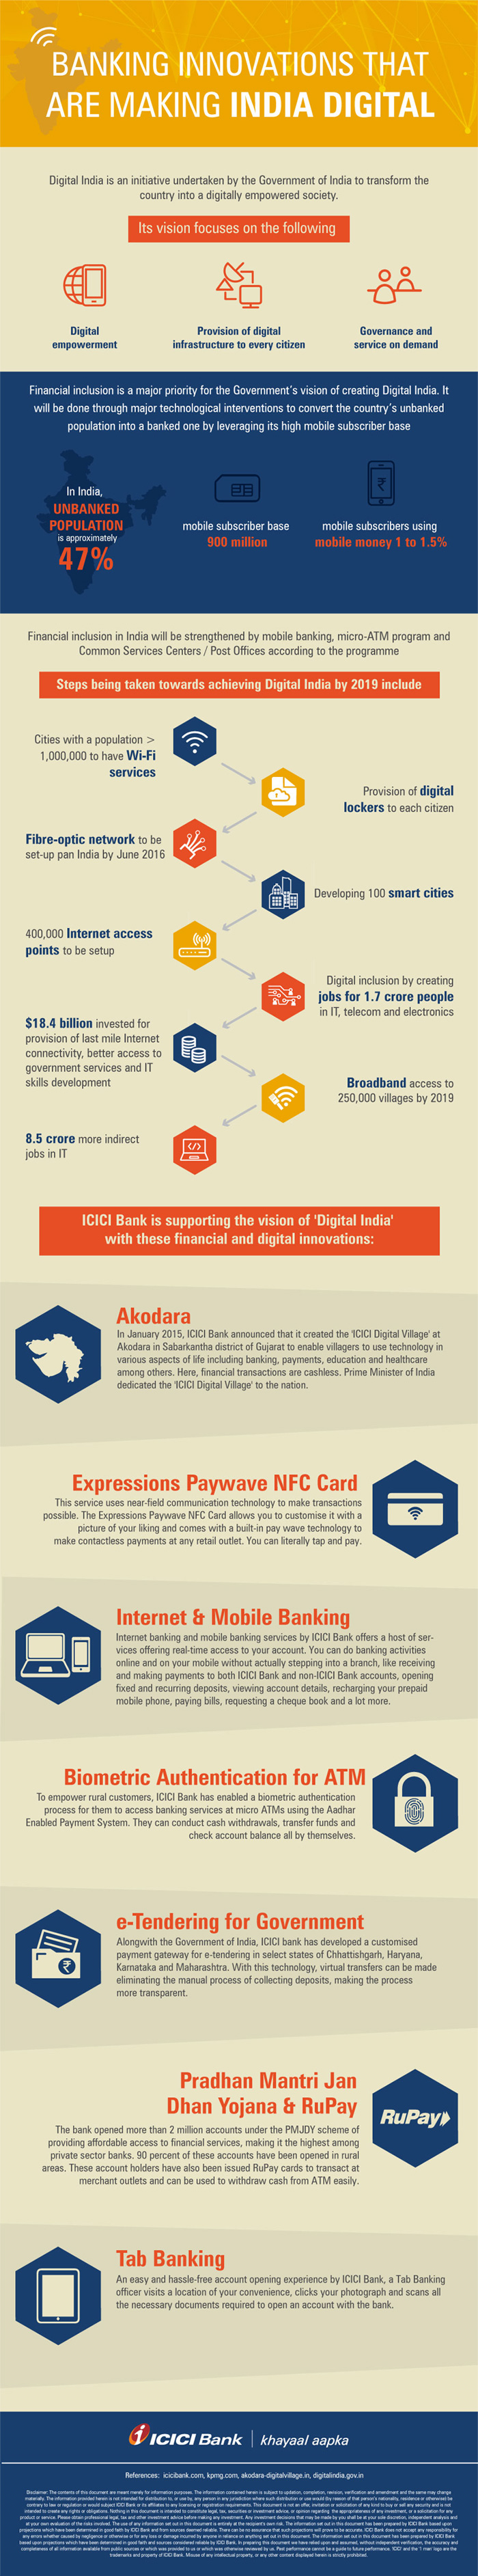 Banking Ideas Innovations Leading To Digital India